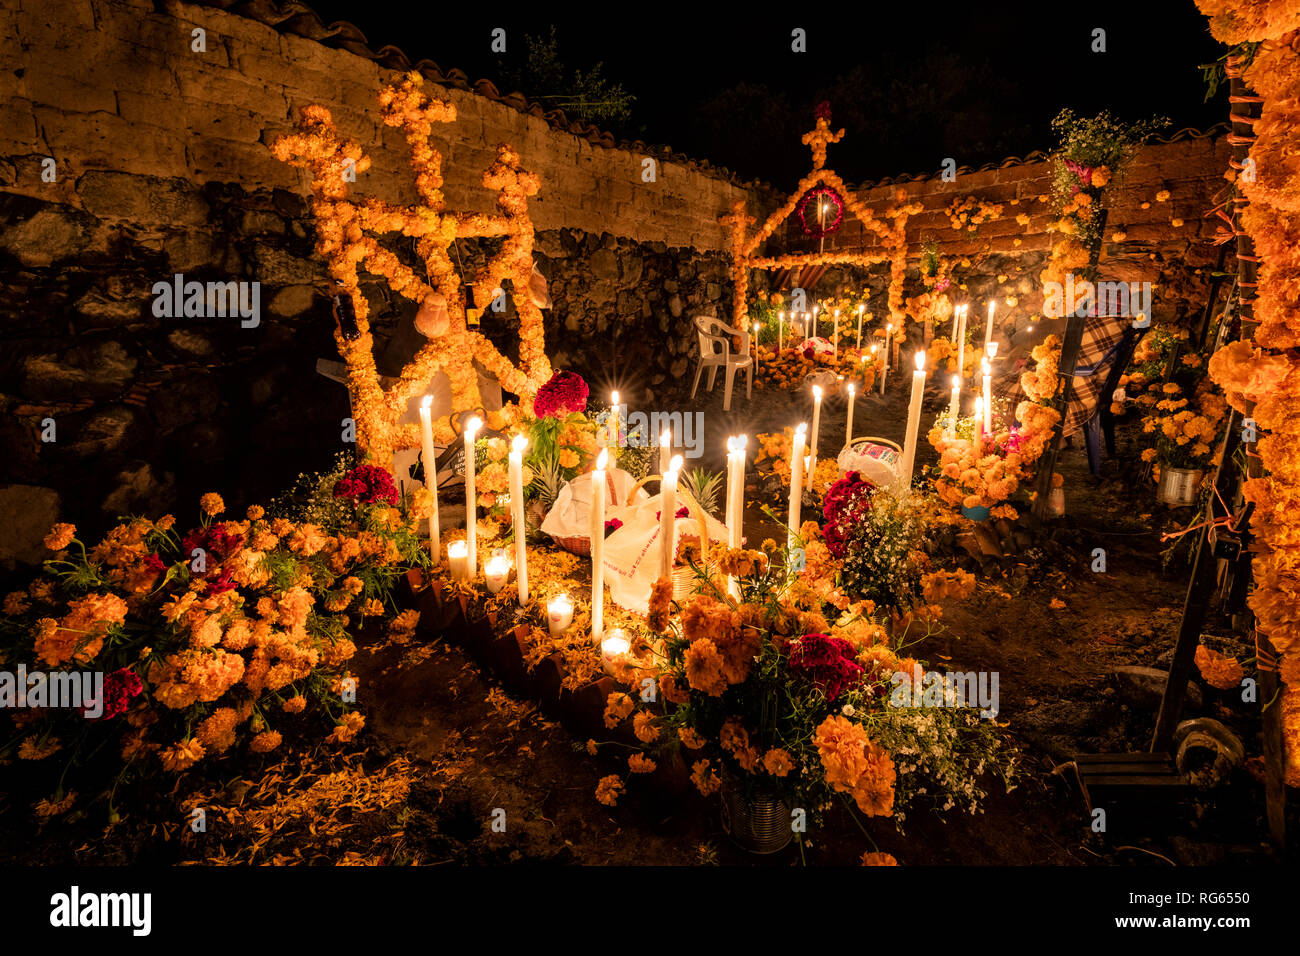 A corner of the cemetery in Arocutin, Michoacan, Mexico during Day of the Dead. - Stock Image